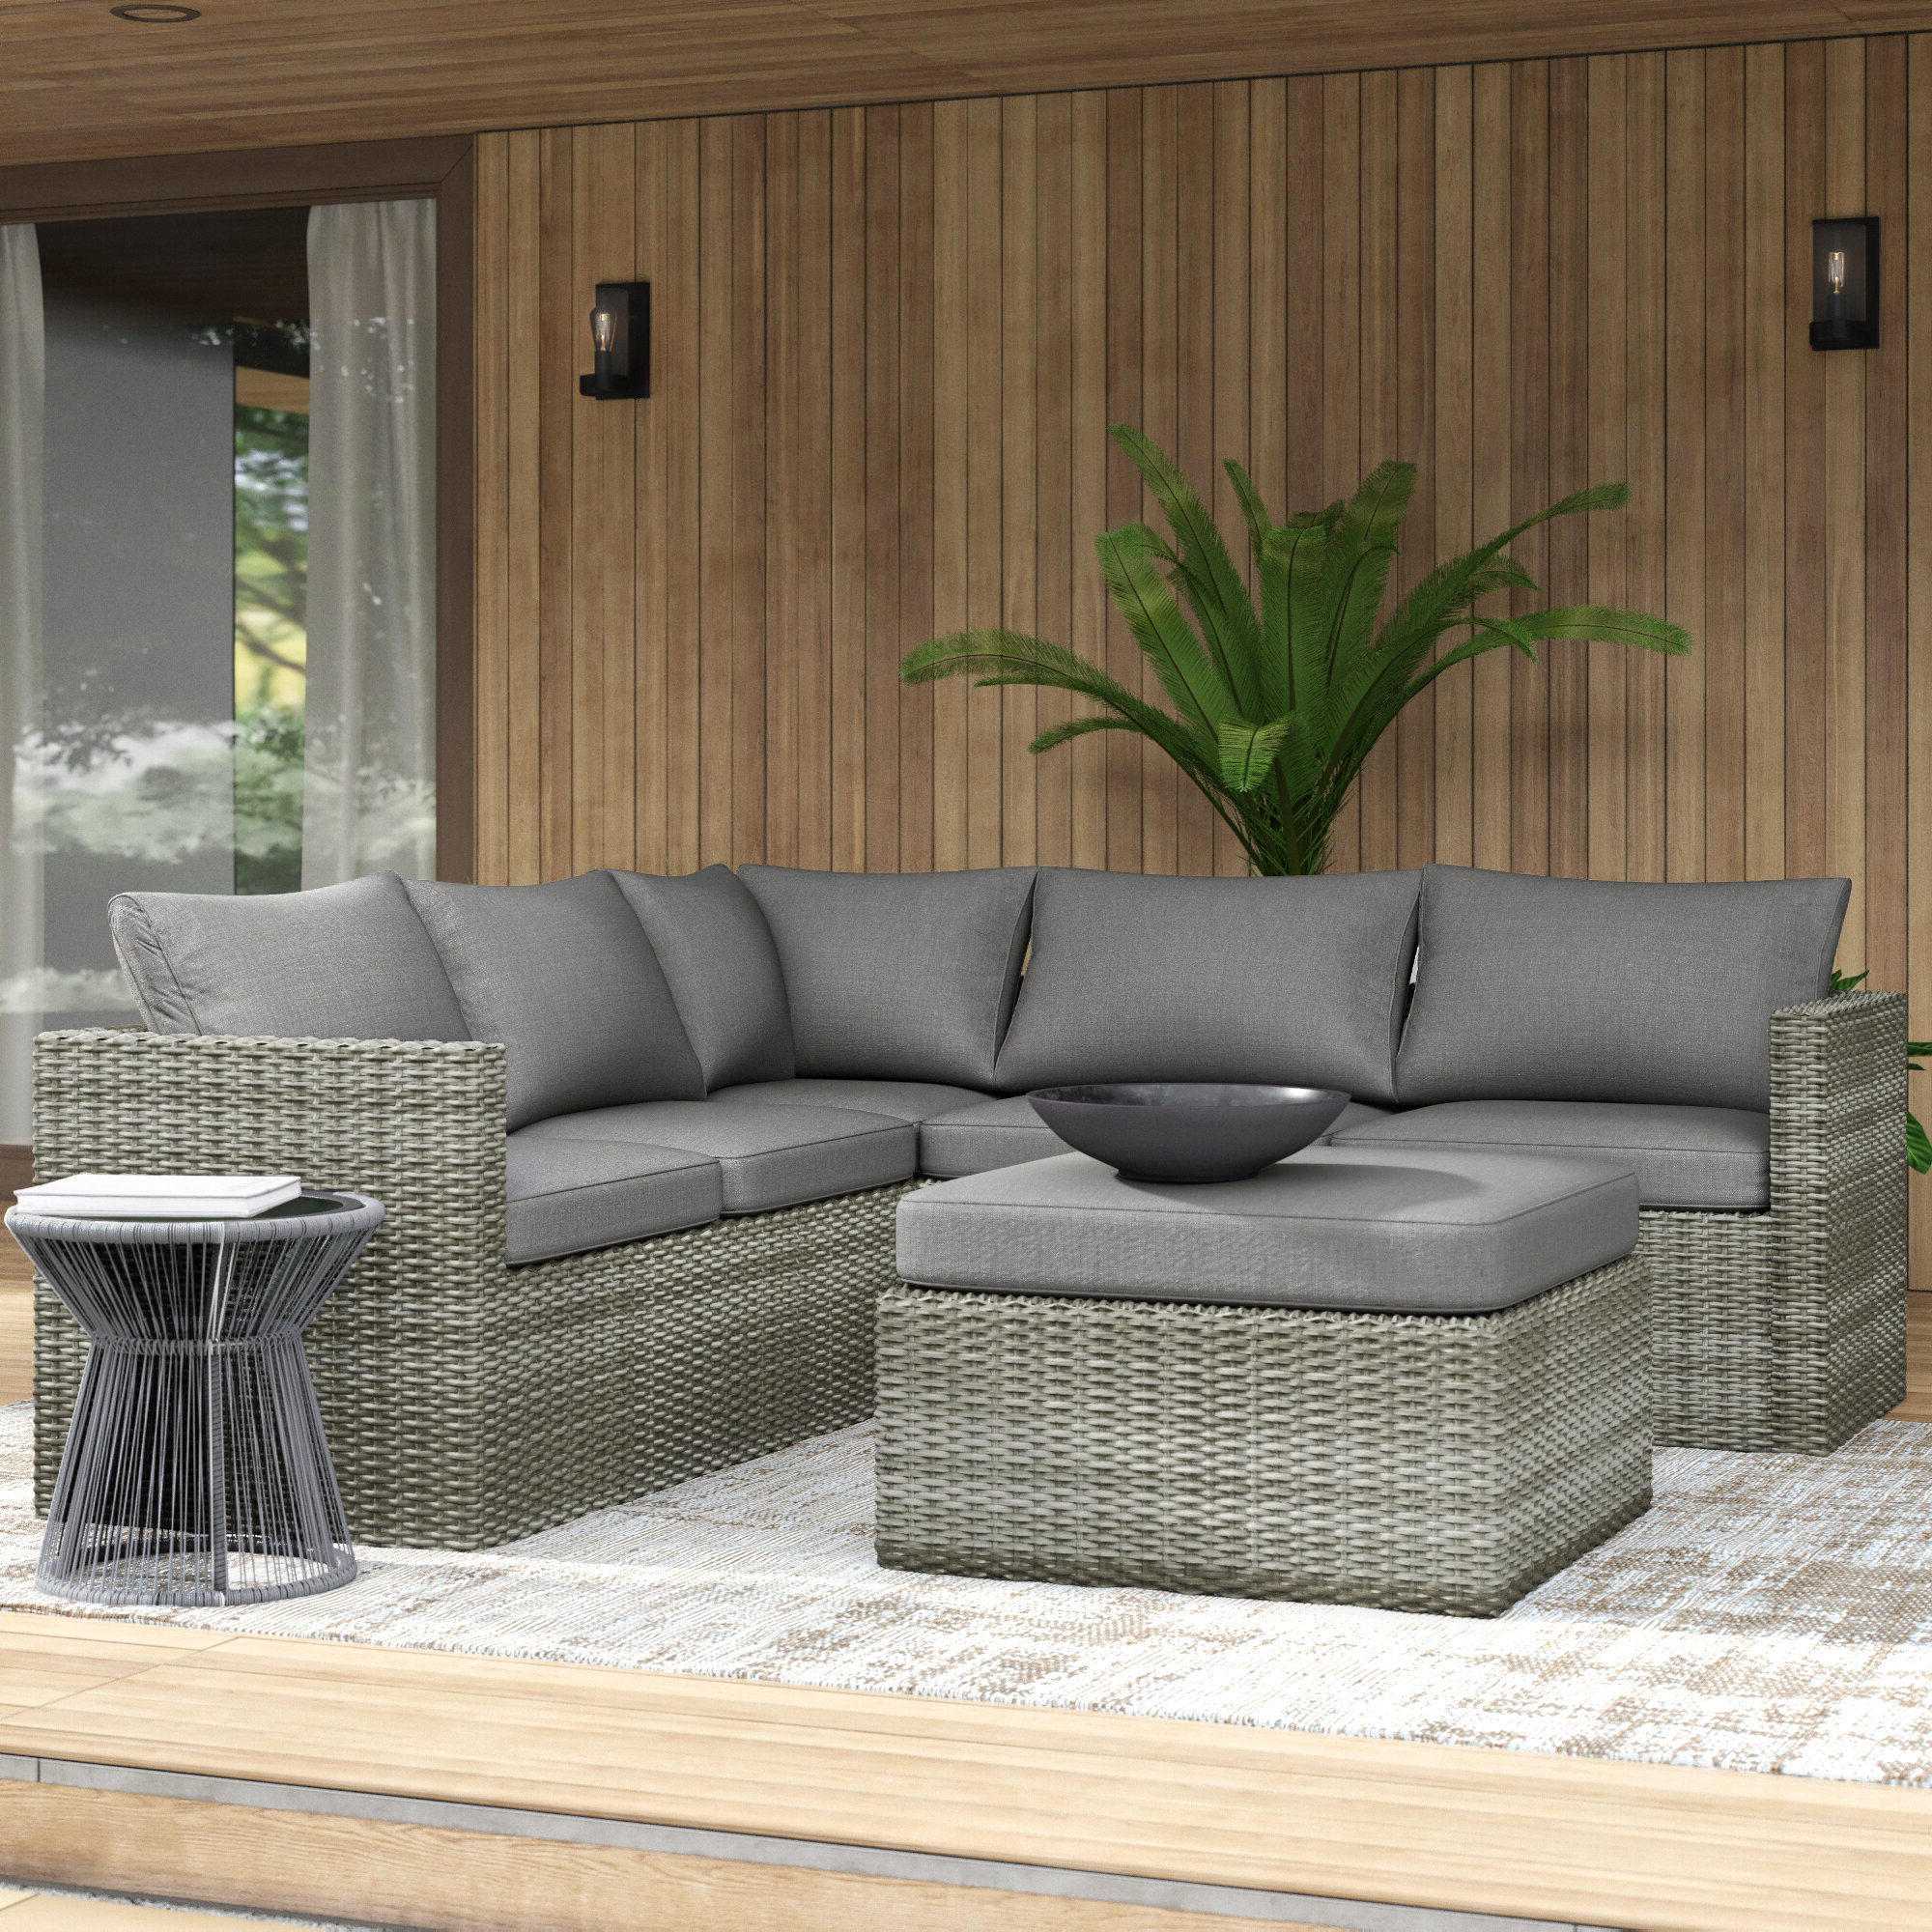 Lorentzen Patio Sectionals With Cushions Intended For Fashionable Lorentzen Patio Sectional With Cushions (View 10 of 20)